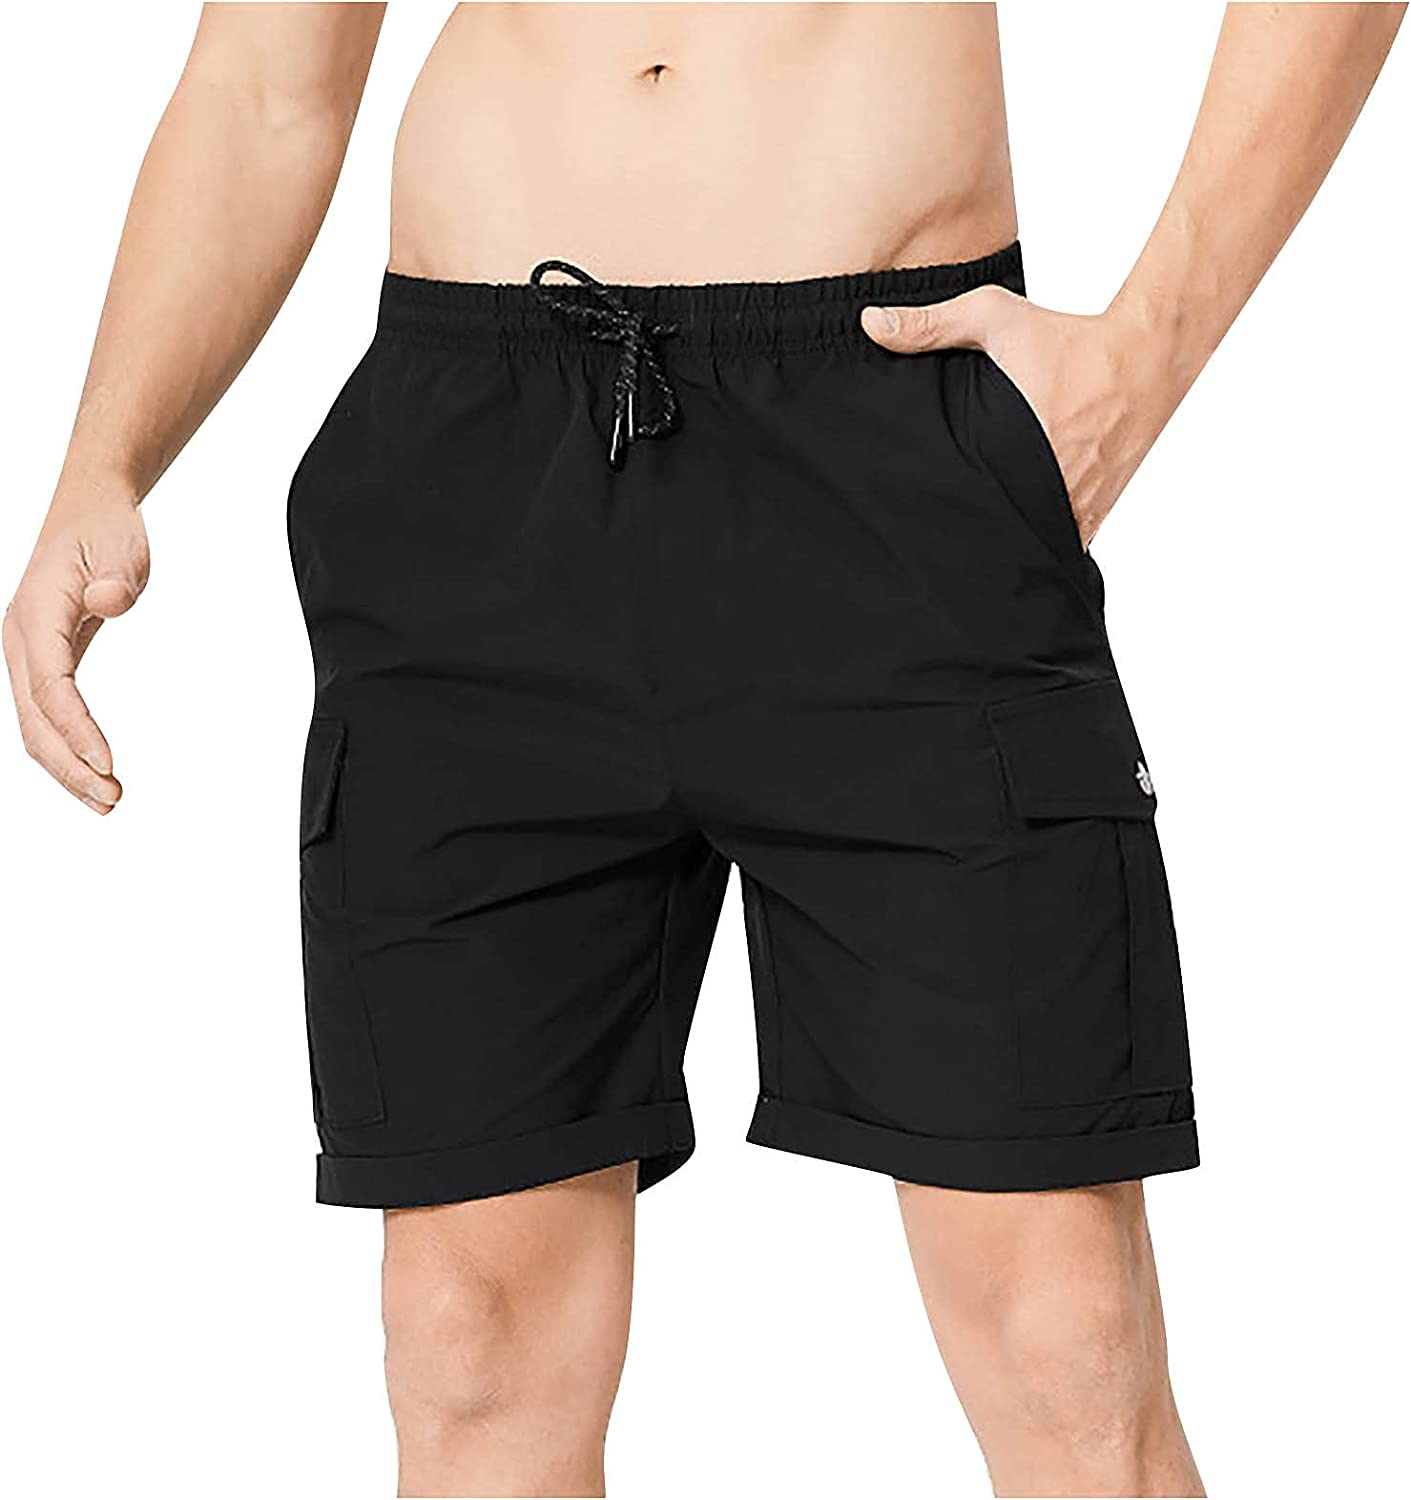 acction Men's Lightweight Cargo Shorts,Relaxed Fit Casual Shorts Multi-Pocket Outdoor Resilience Time Tooling Shorts Pants